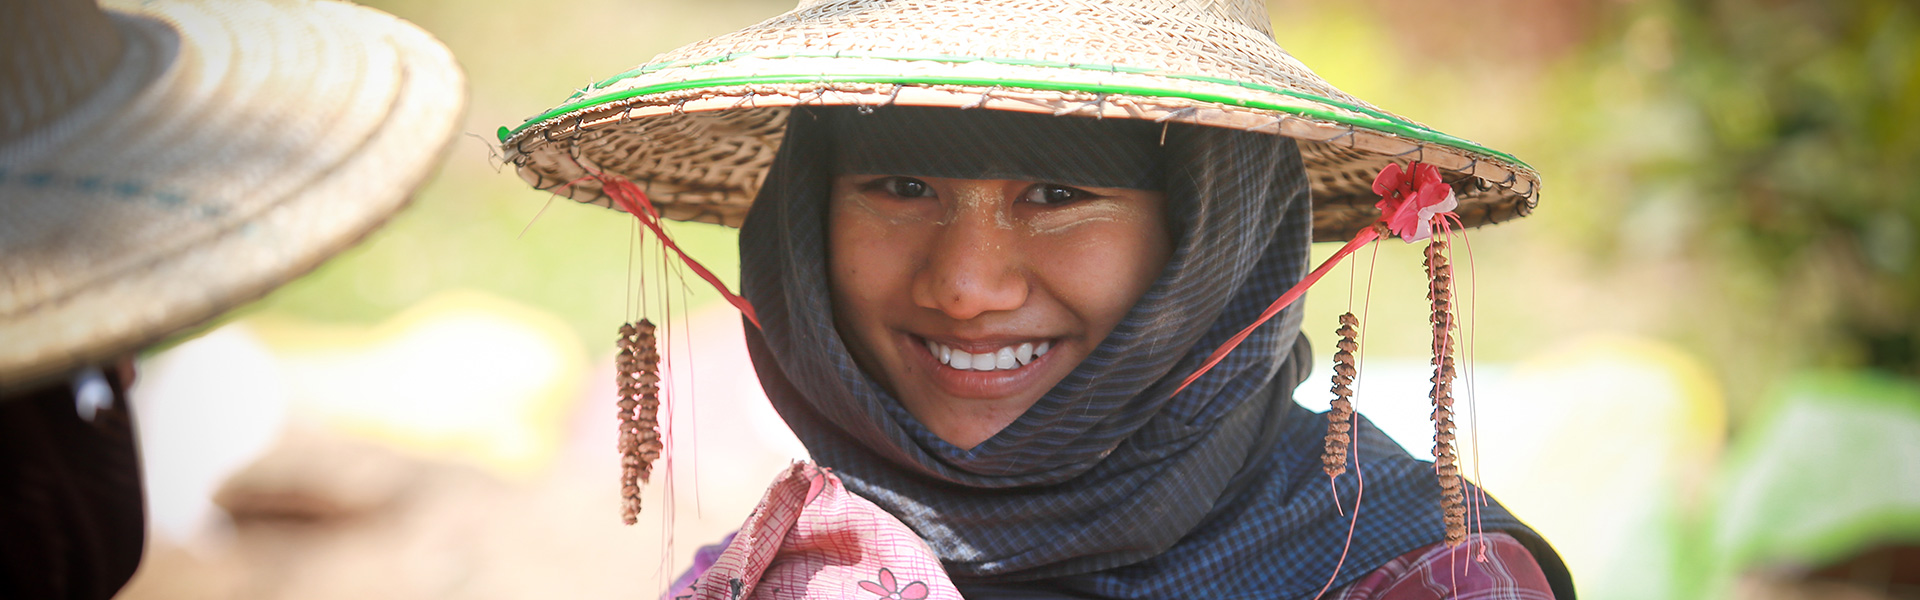 myanmar-smiling-woman-with-hat